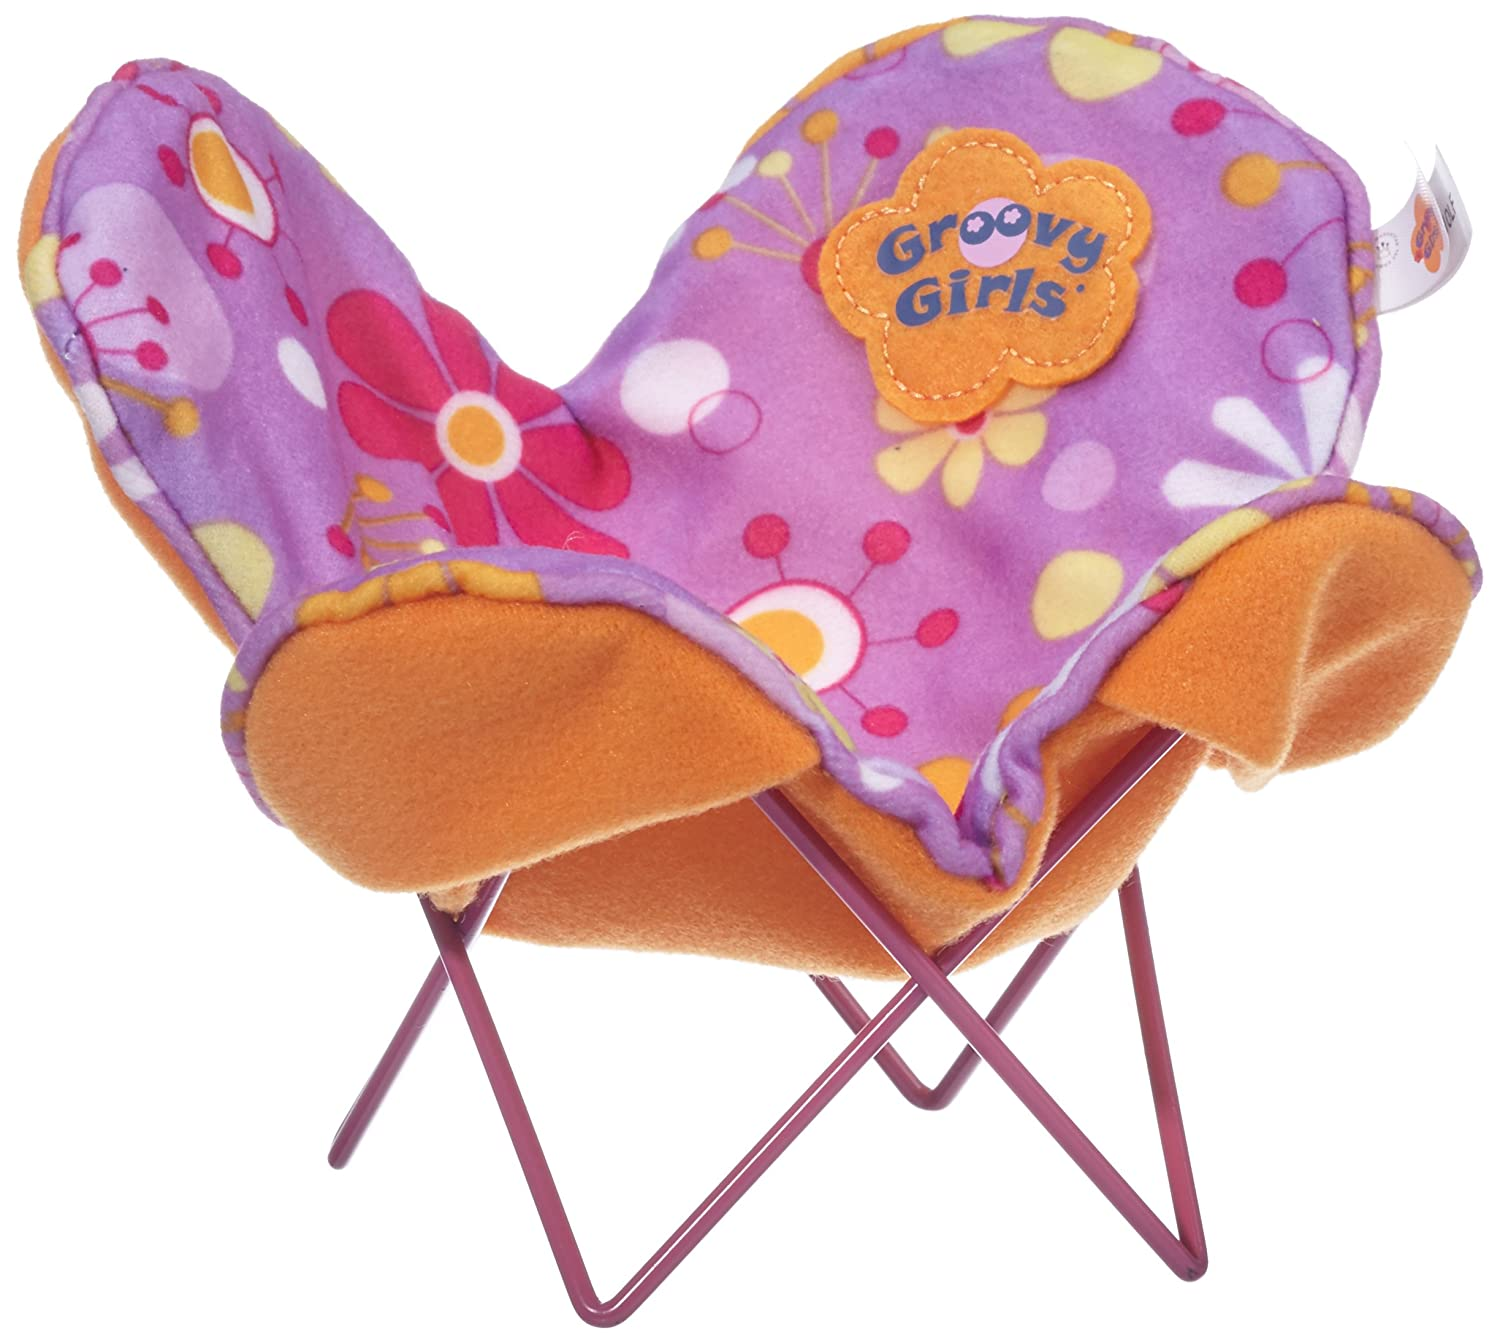 Amazon.com Manhattan Toy Groovy Girls Be Relaxed Butterfly Chair Doll Furniture Toys u0026 Games  sc 1 st  Amazon.com & Amazon.com: Manhattan Toy Groovy Girls Be Relaxed Butterfly Chair ...